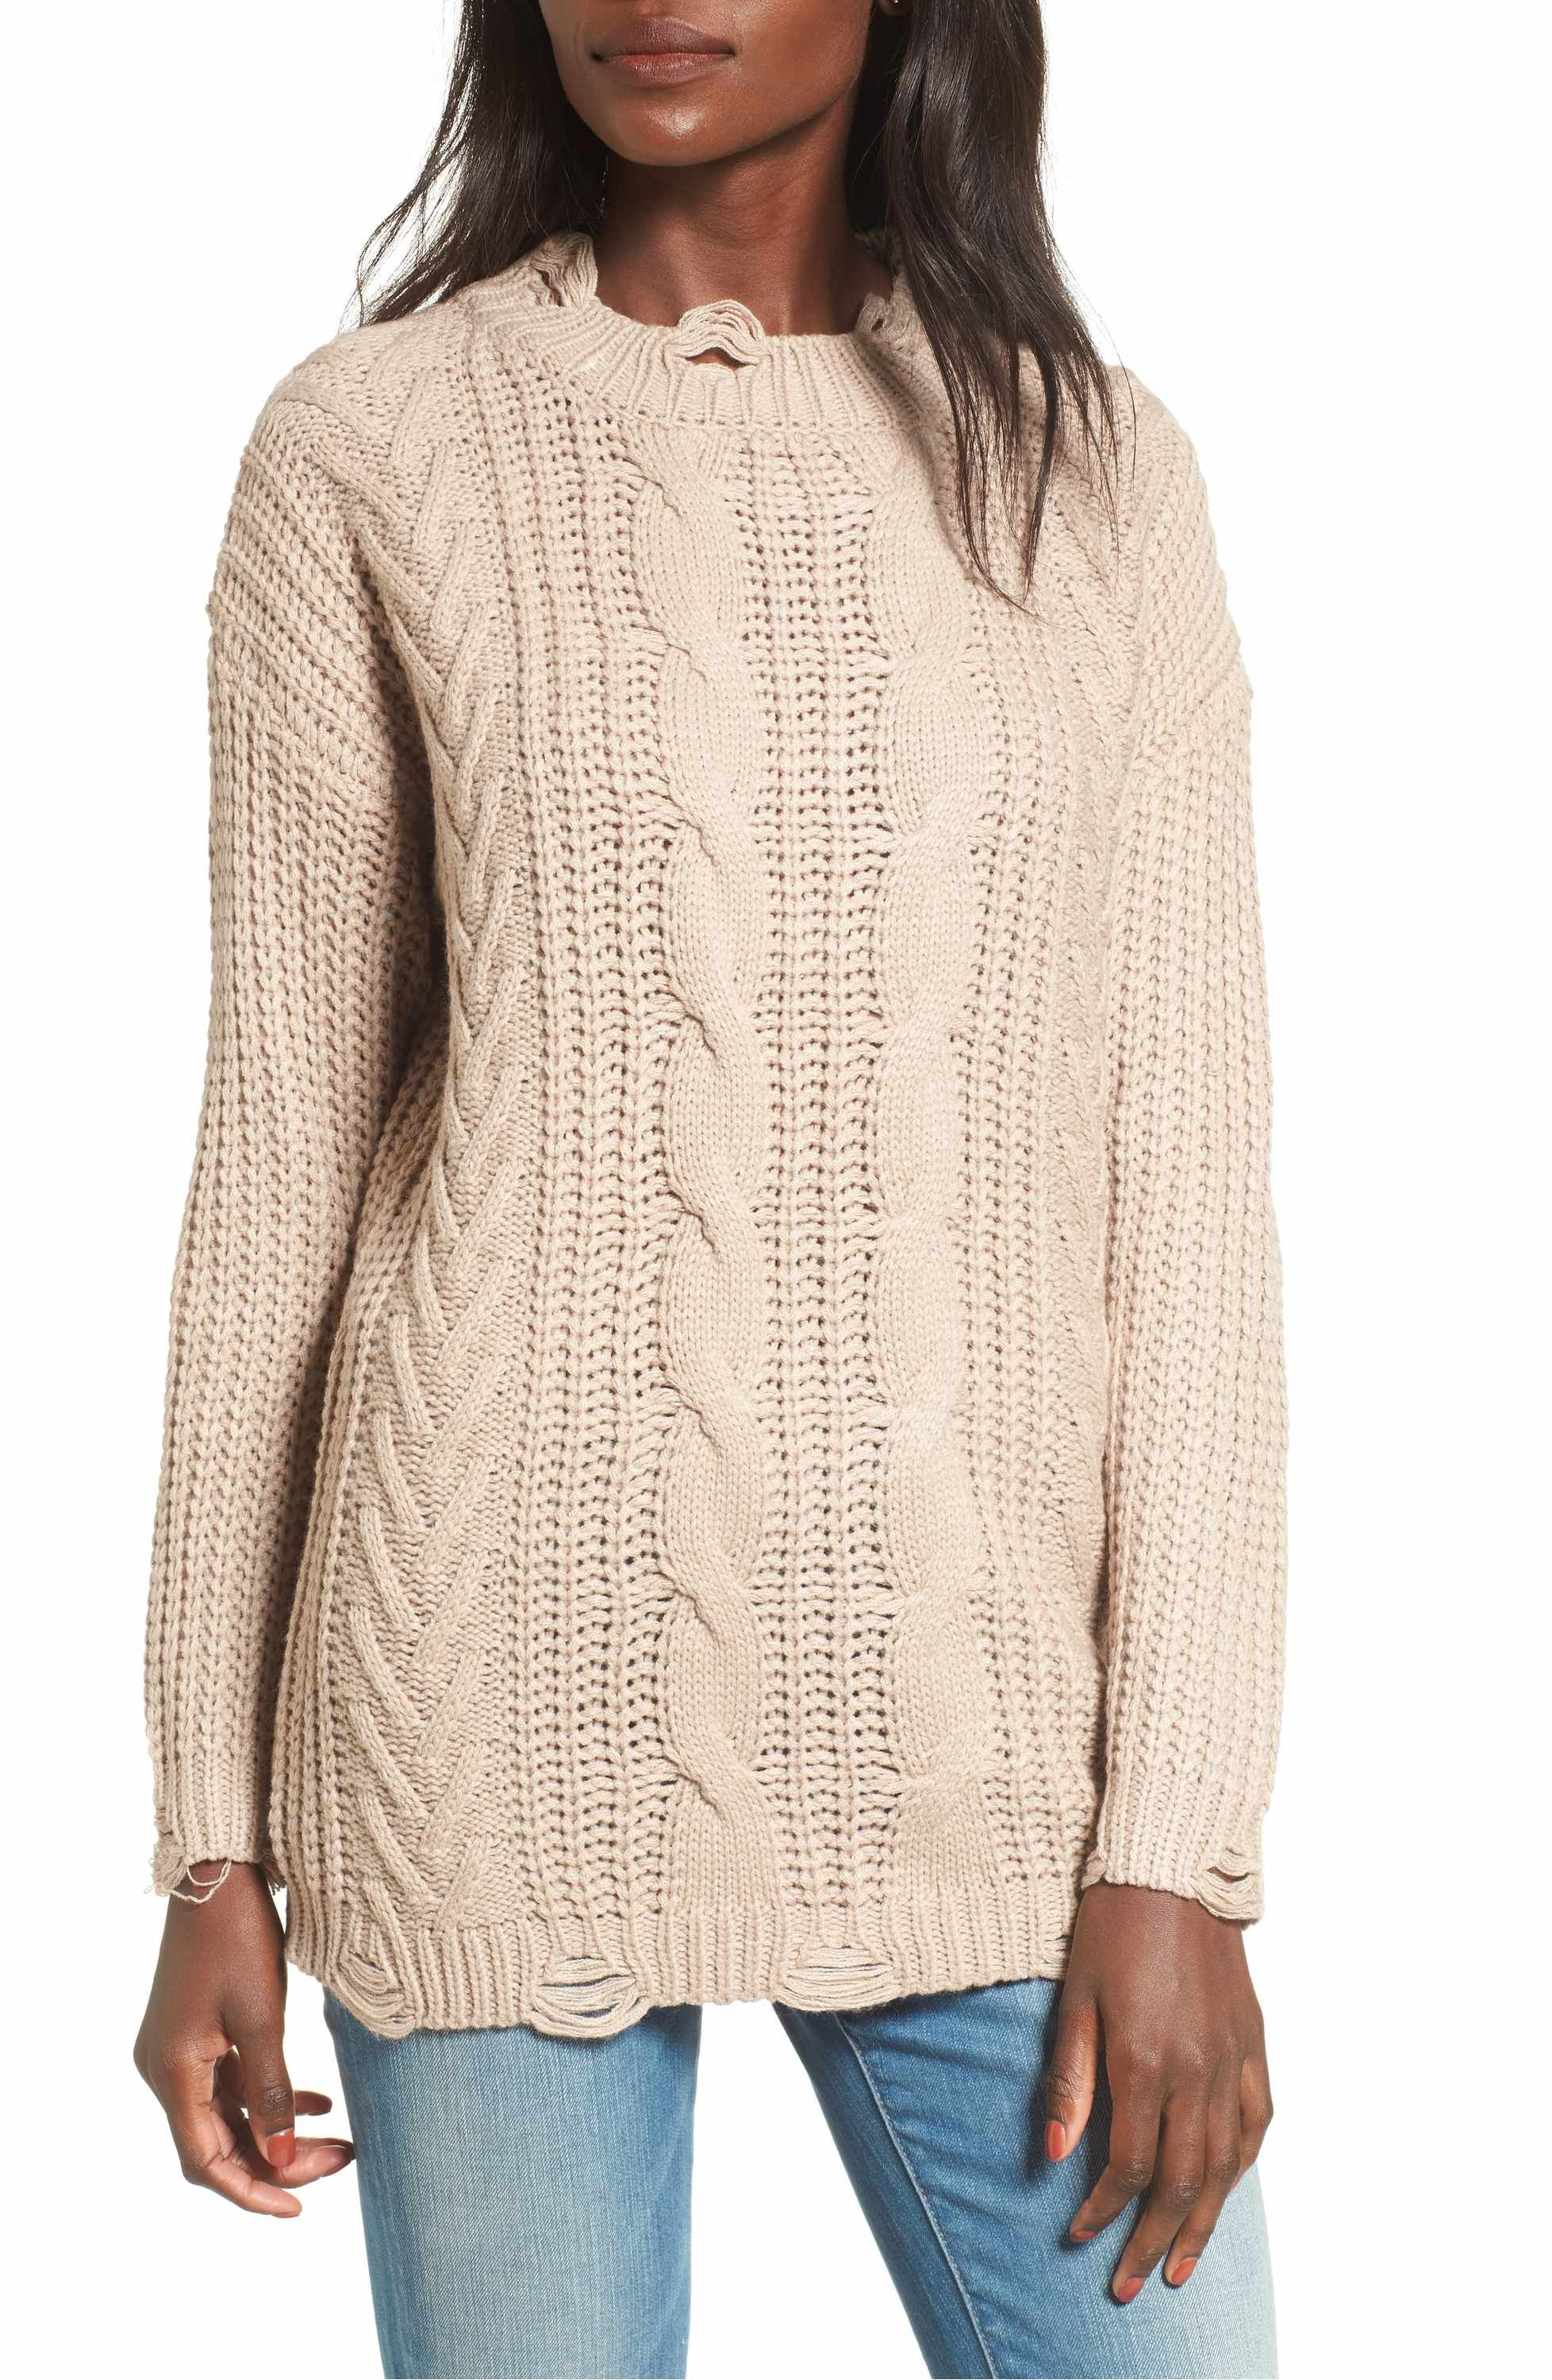 727d9df08a Main Image - Dreamers by Debut Distressed Cable Knit Sweater